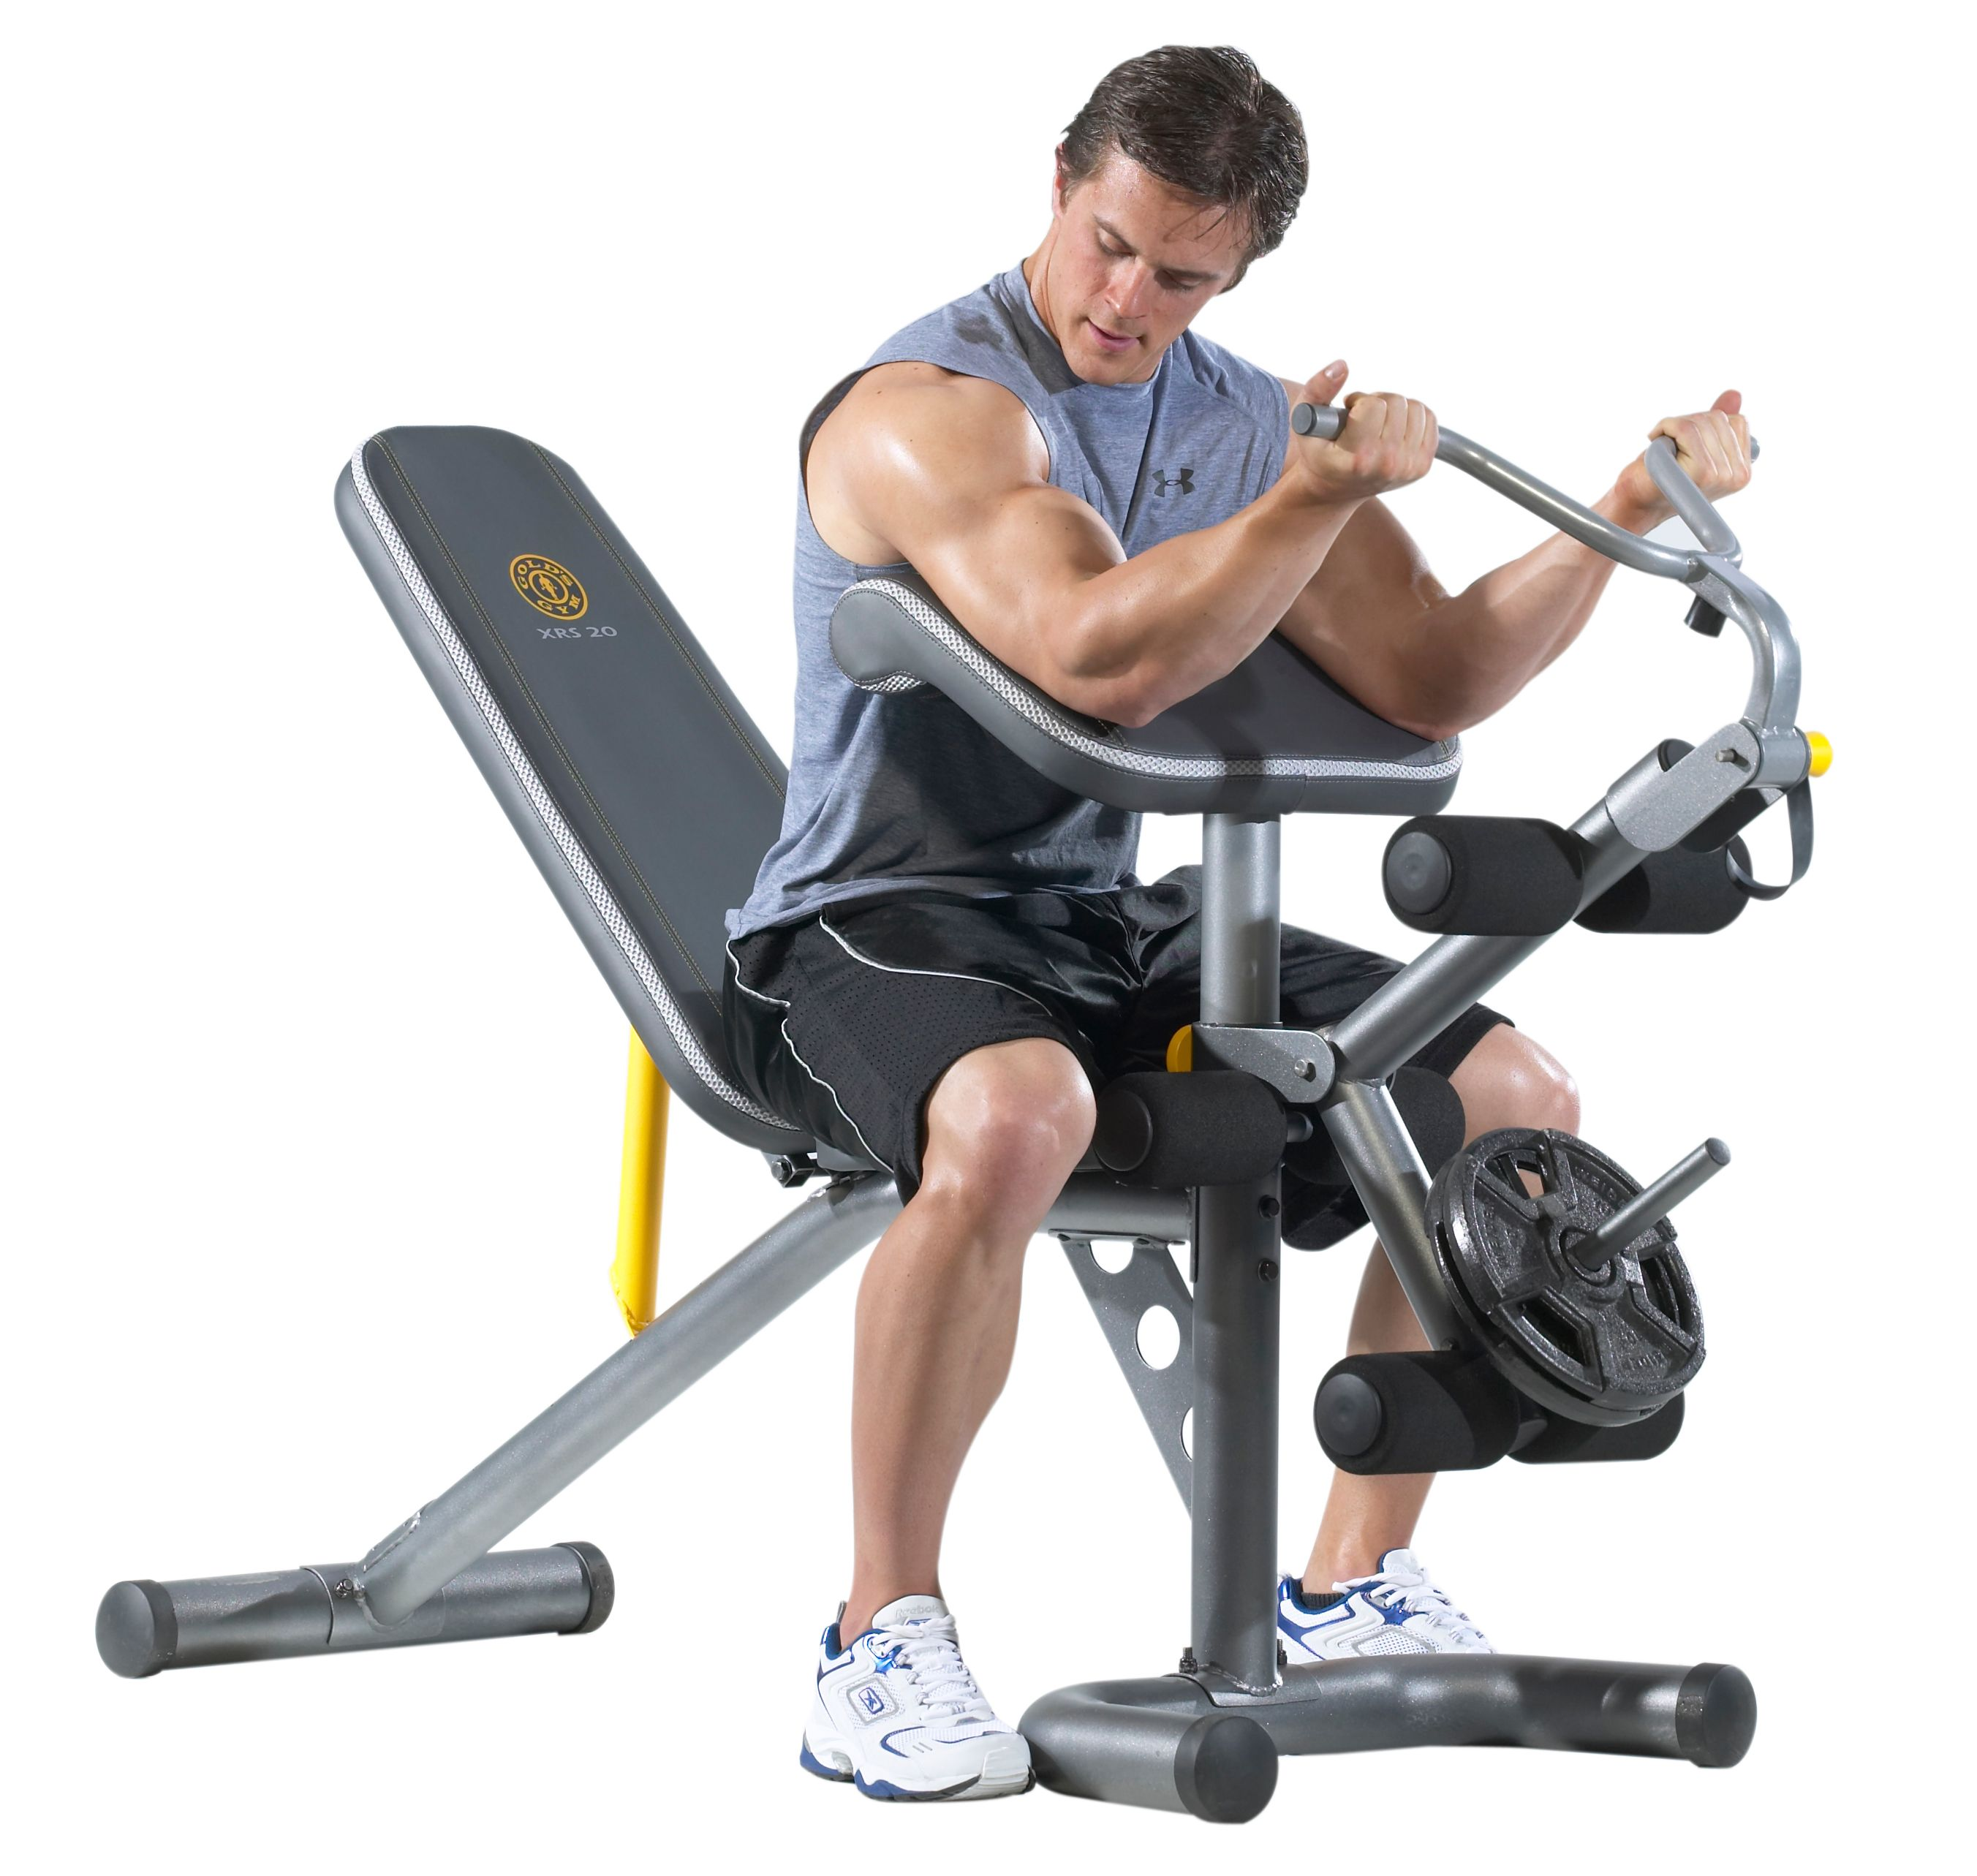 Gold's Gym XRS 20 Olympic Workout Bench with Squat Rack - Walmart com